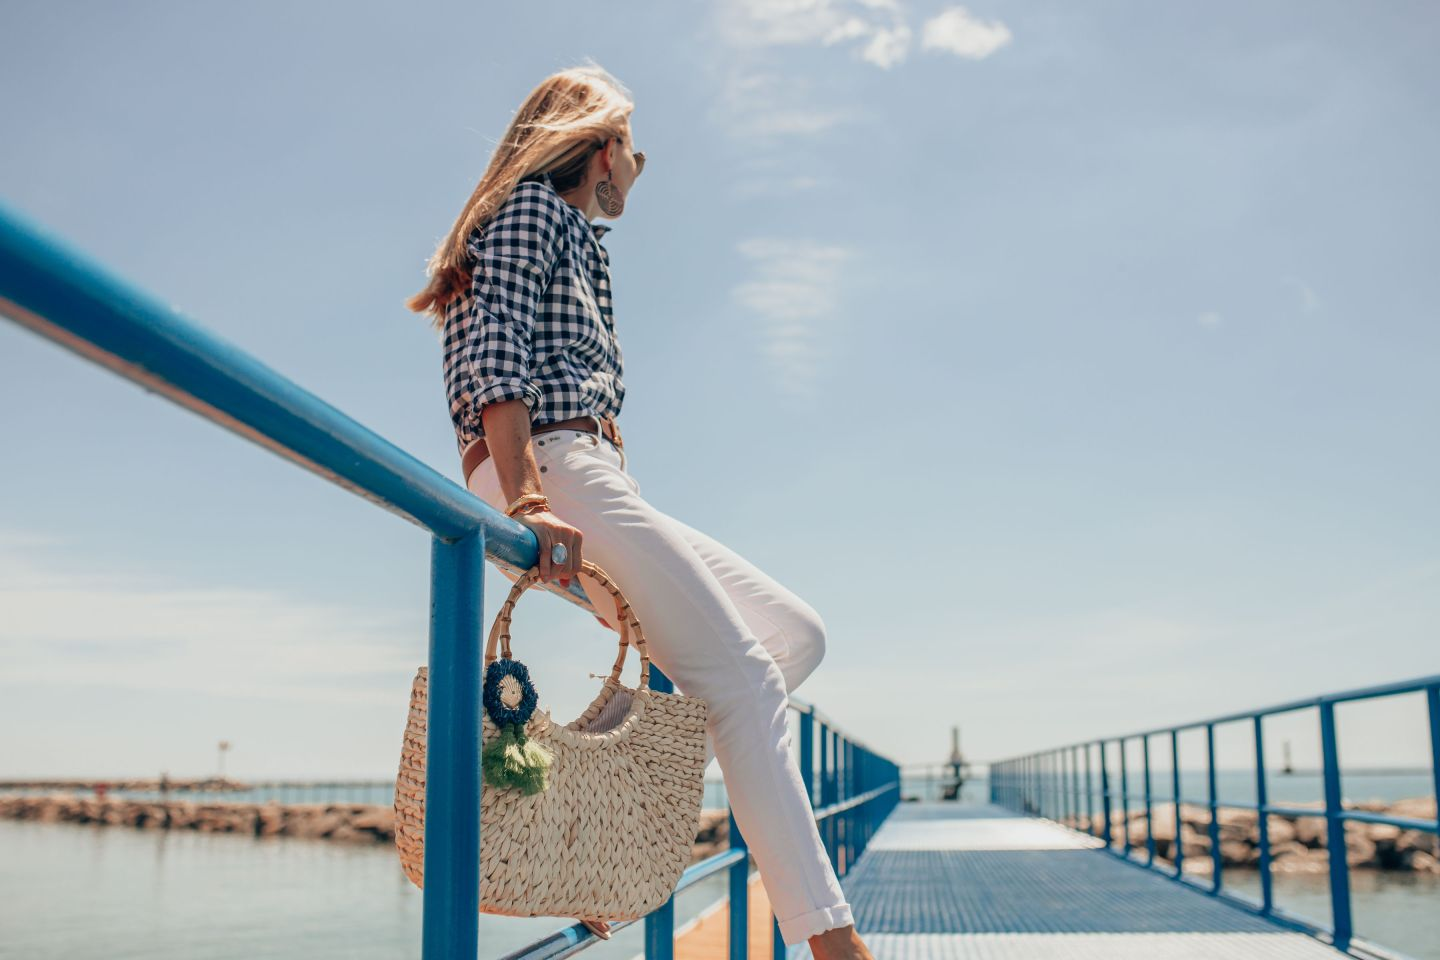 Georgia Arnold of Gloss and Harbour wearing a Navy Gingham Button with white jeans on Lake Michigan in Milwaukee, WI